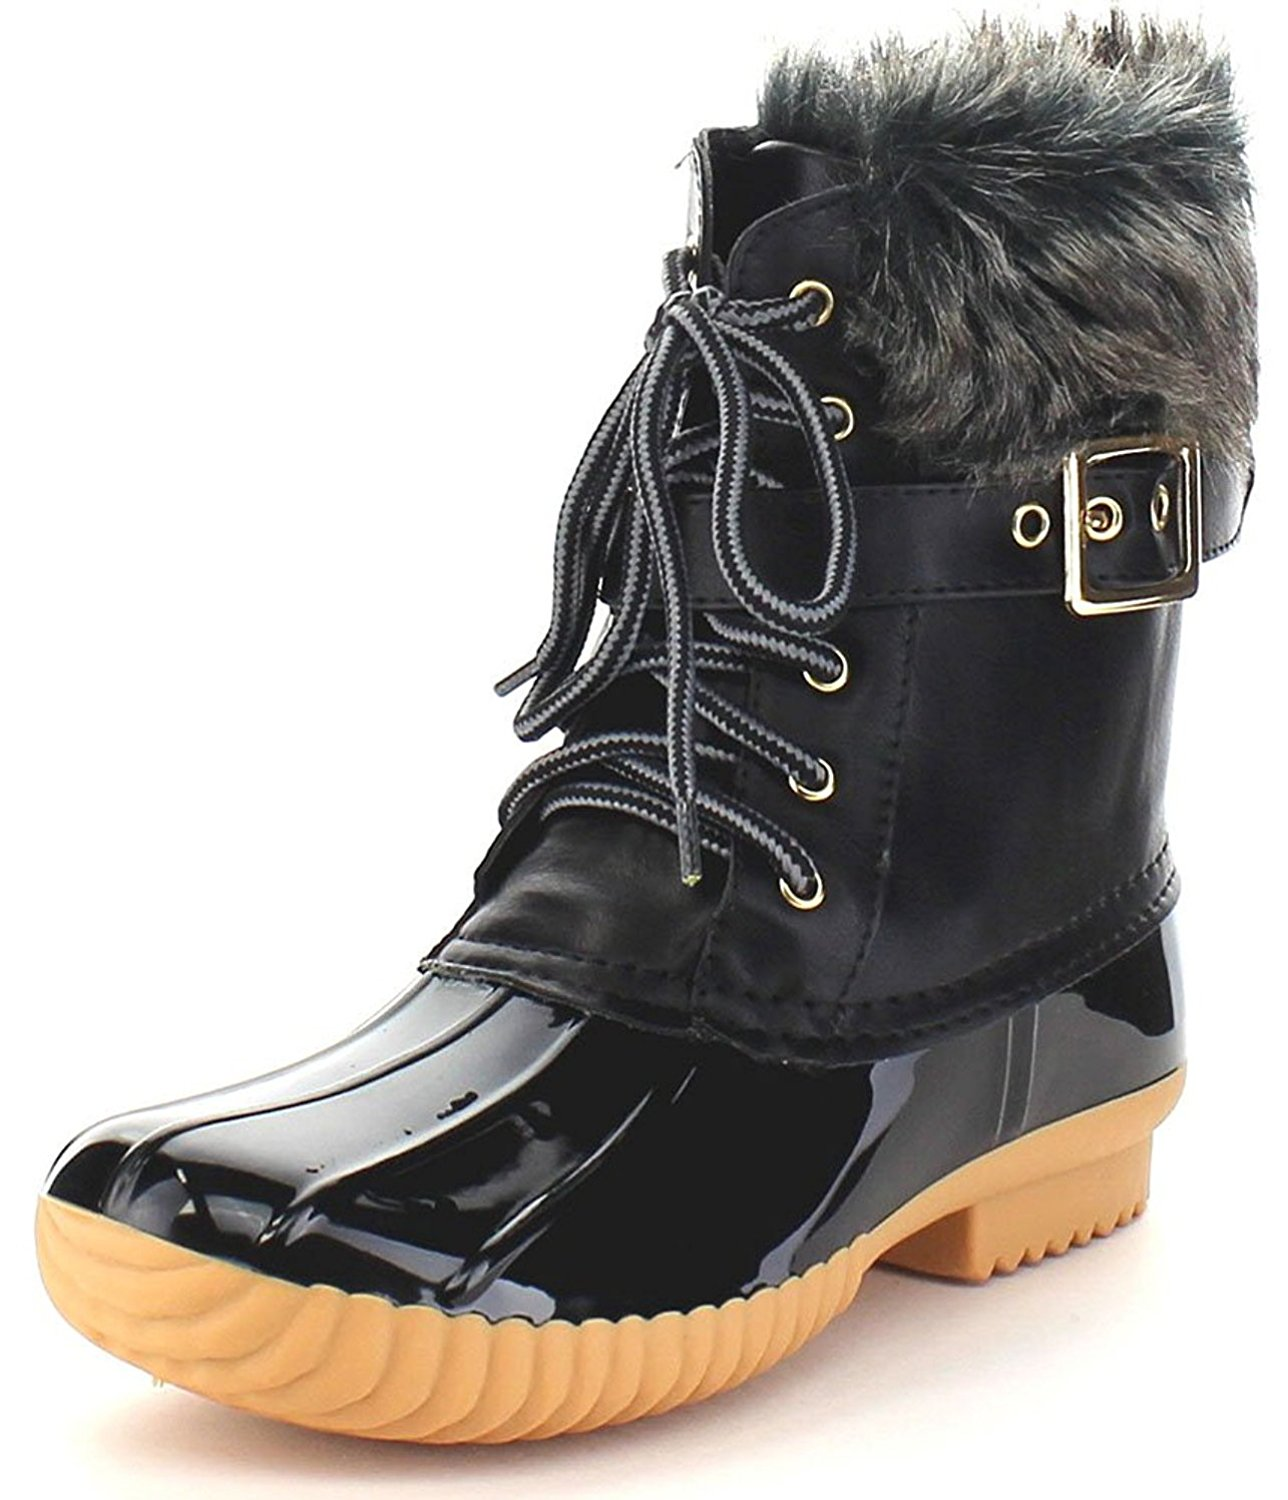 4c998885af4e Get Quotations · Nature Breeze Duck-01 Women s Chic Lace up Buckled Duck  Waterproof Snow Boots